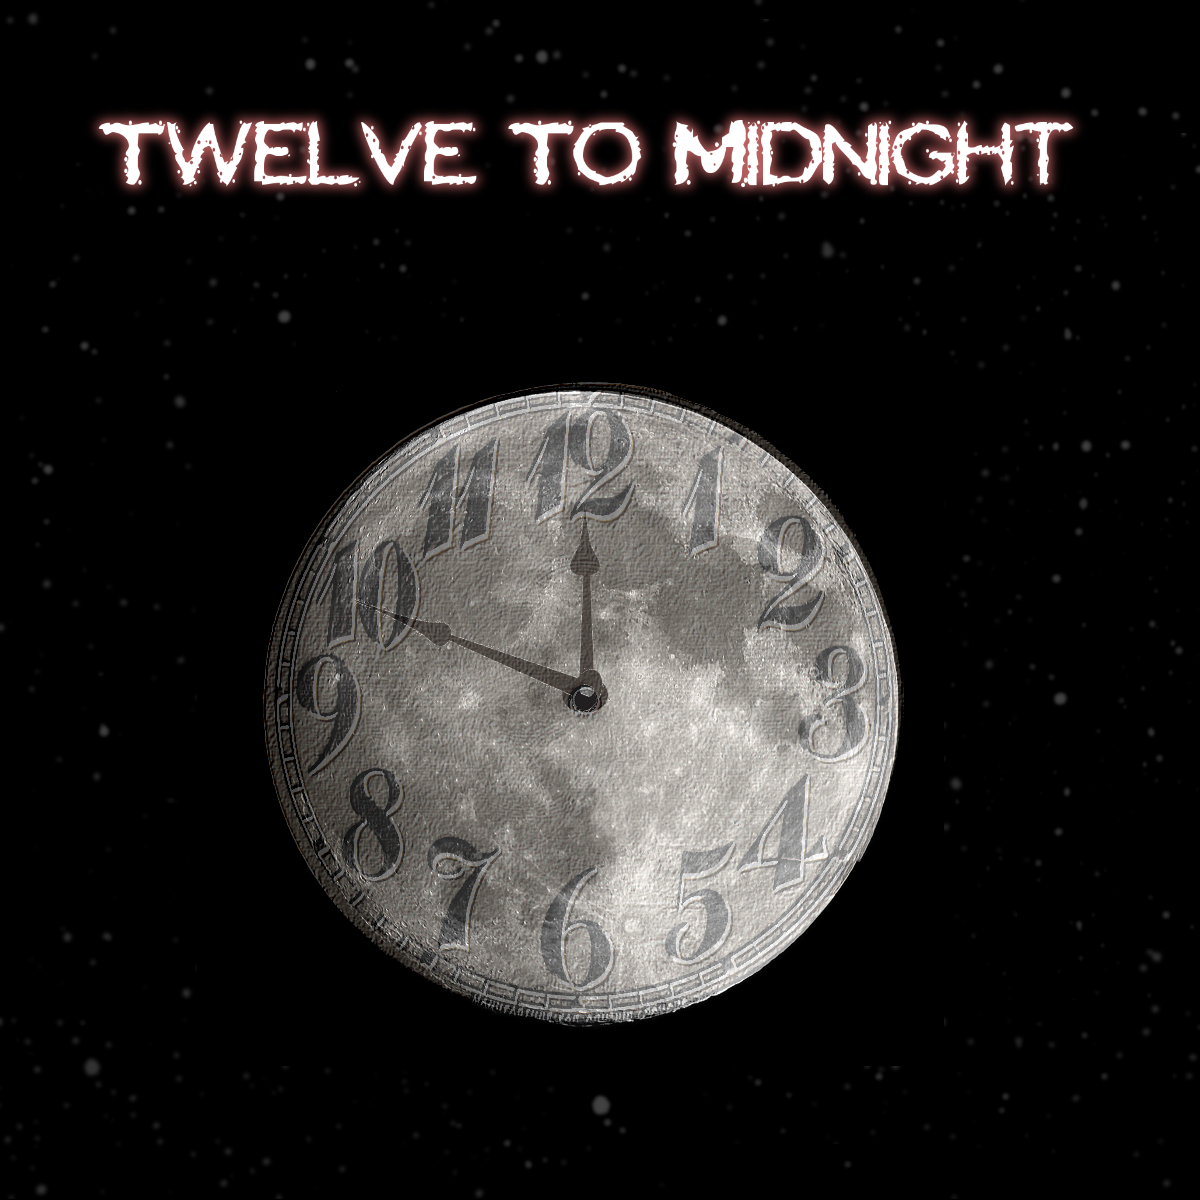 Twelve To Midnight - default icon